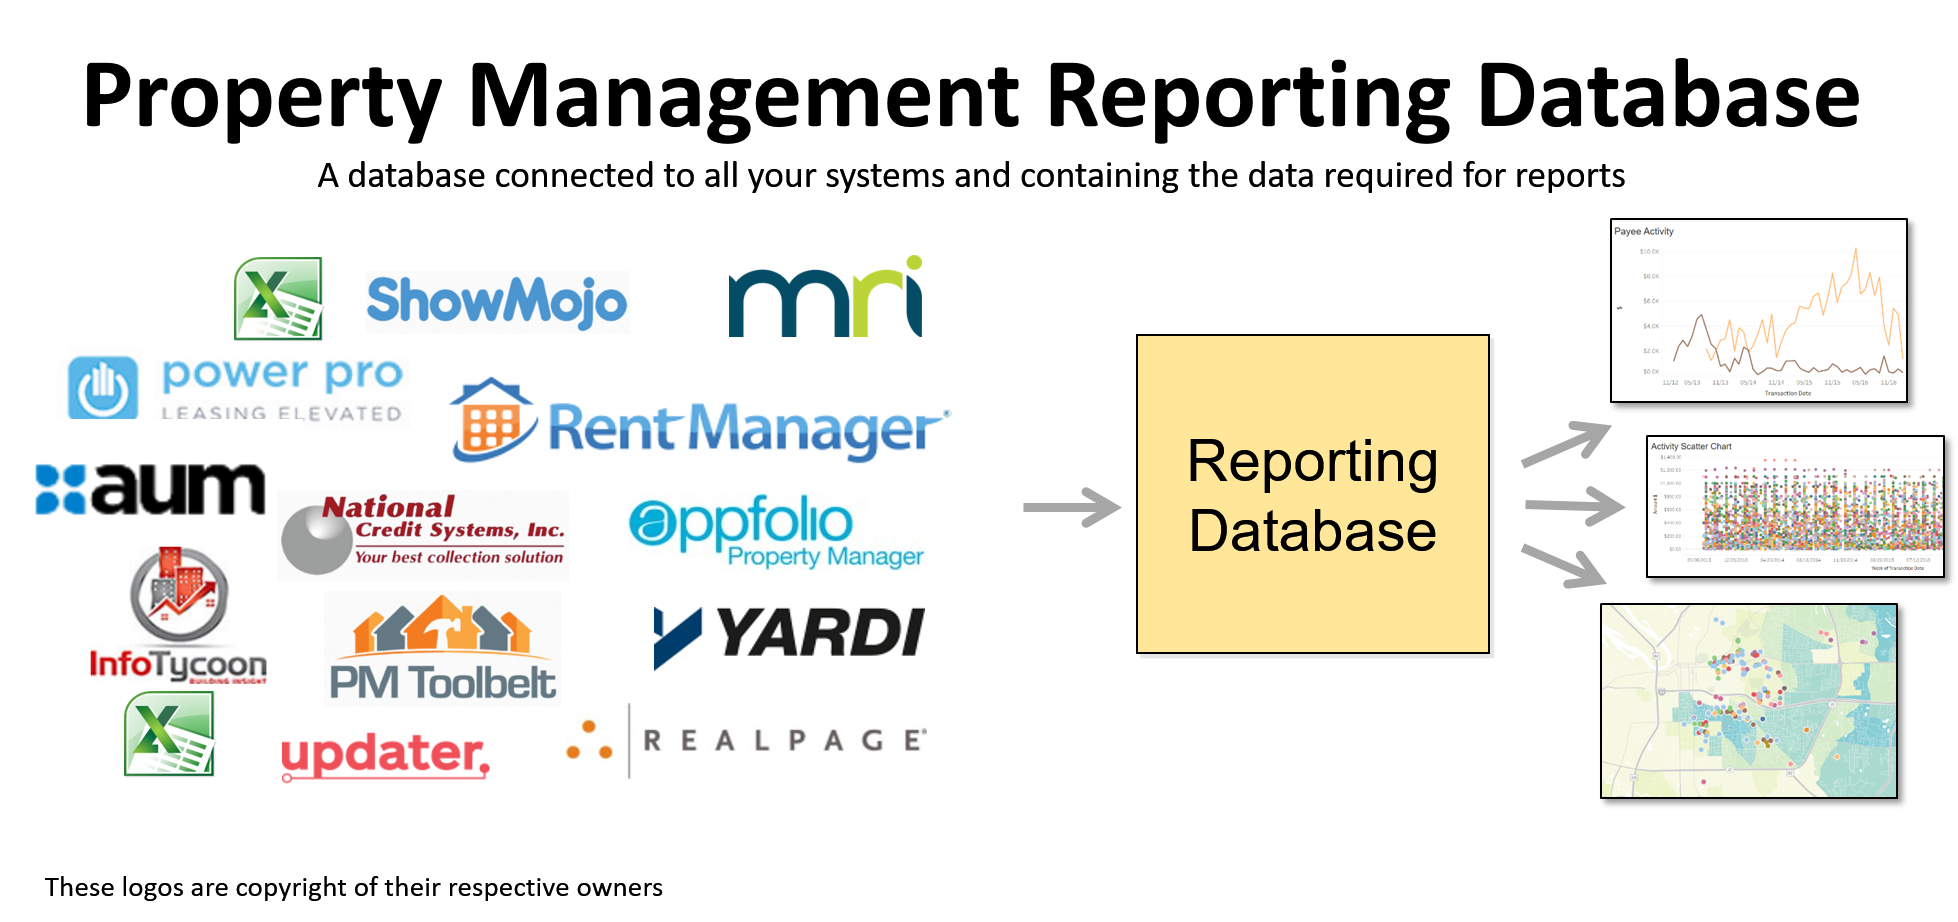 property management reporting database